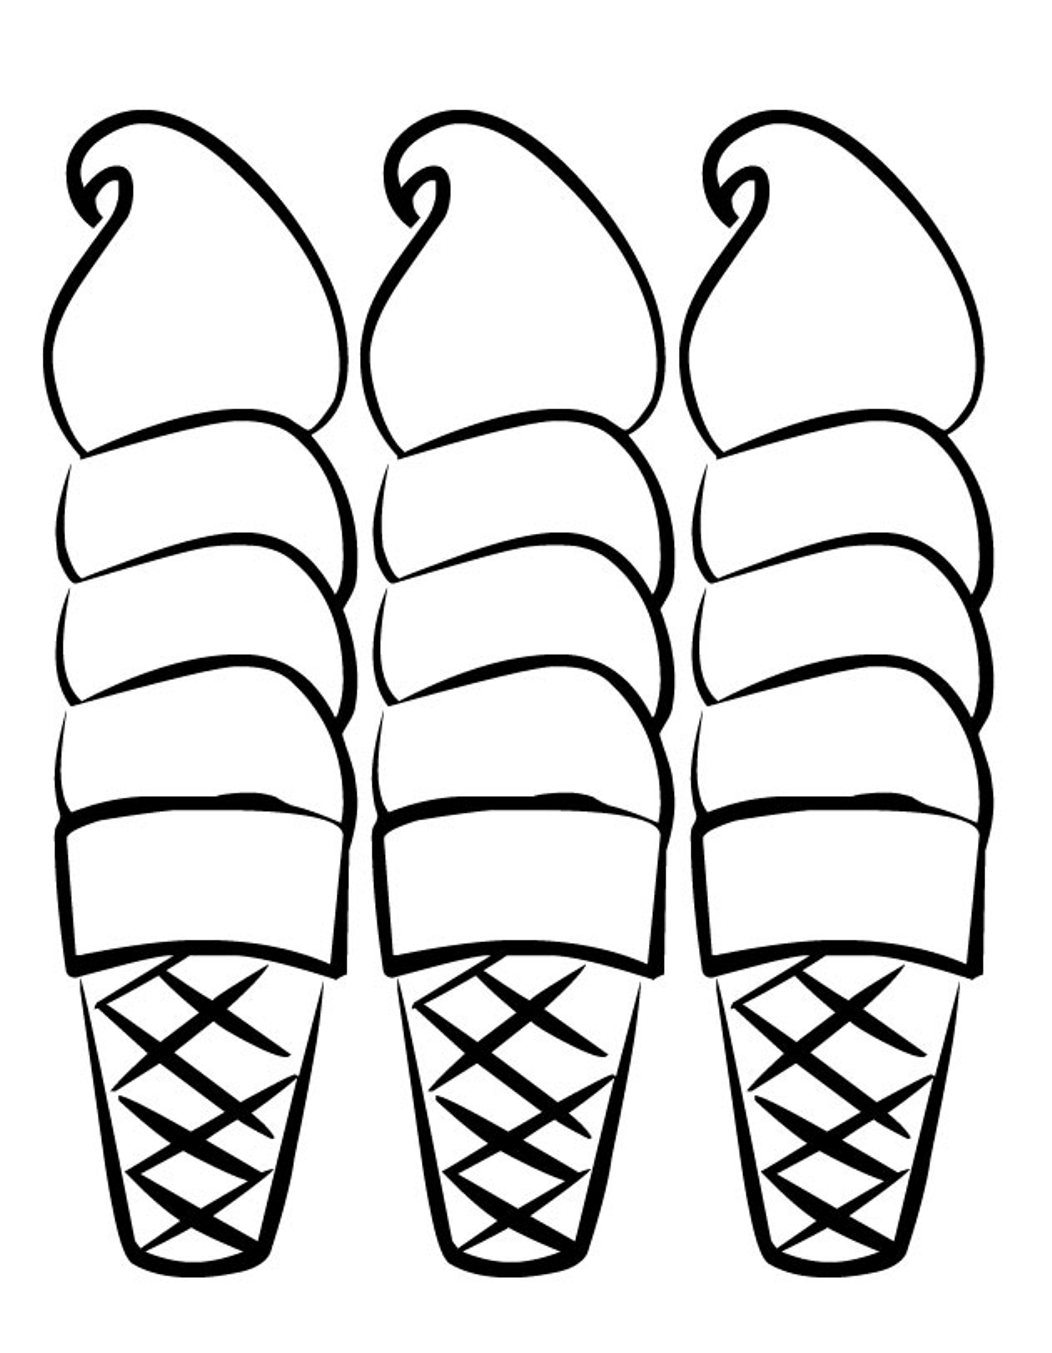 Ice Cream Cone Coloring Page at GetDrawings.com | Free for personal ...